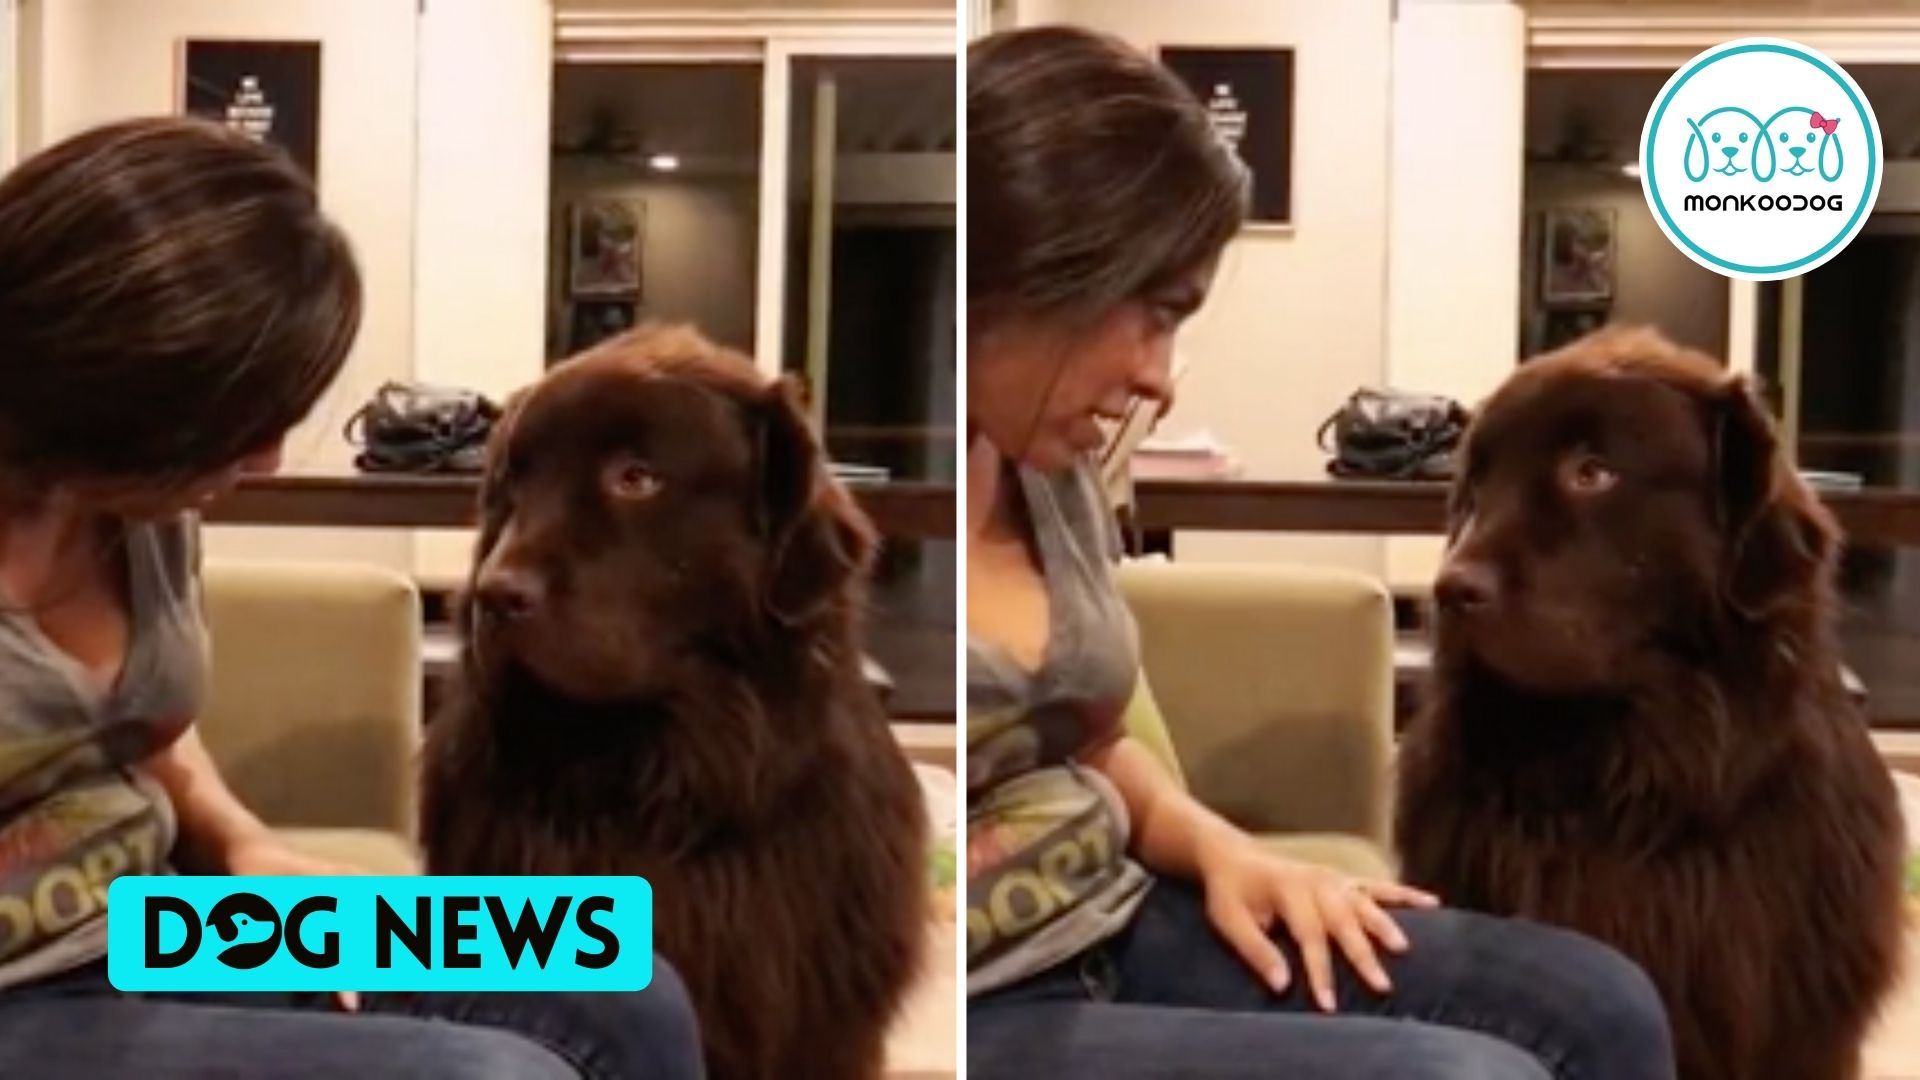 The Big Fur Ball is up to some 'DRAMA'. Check out the adorable video!!